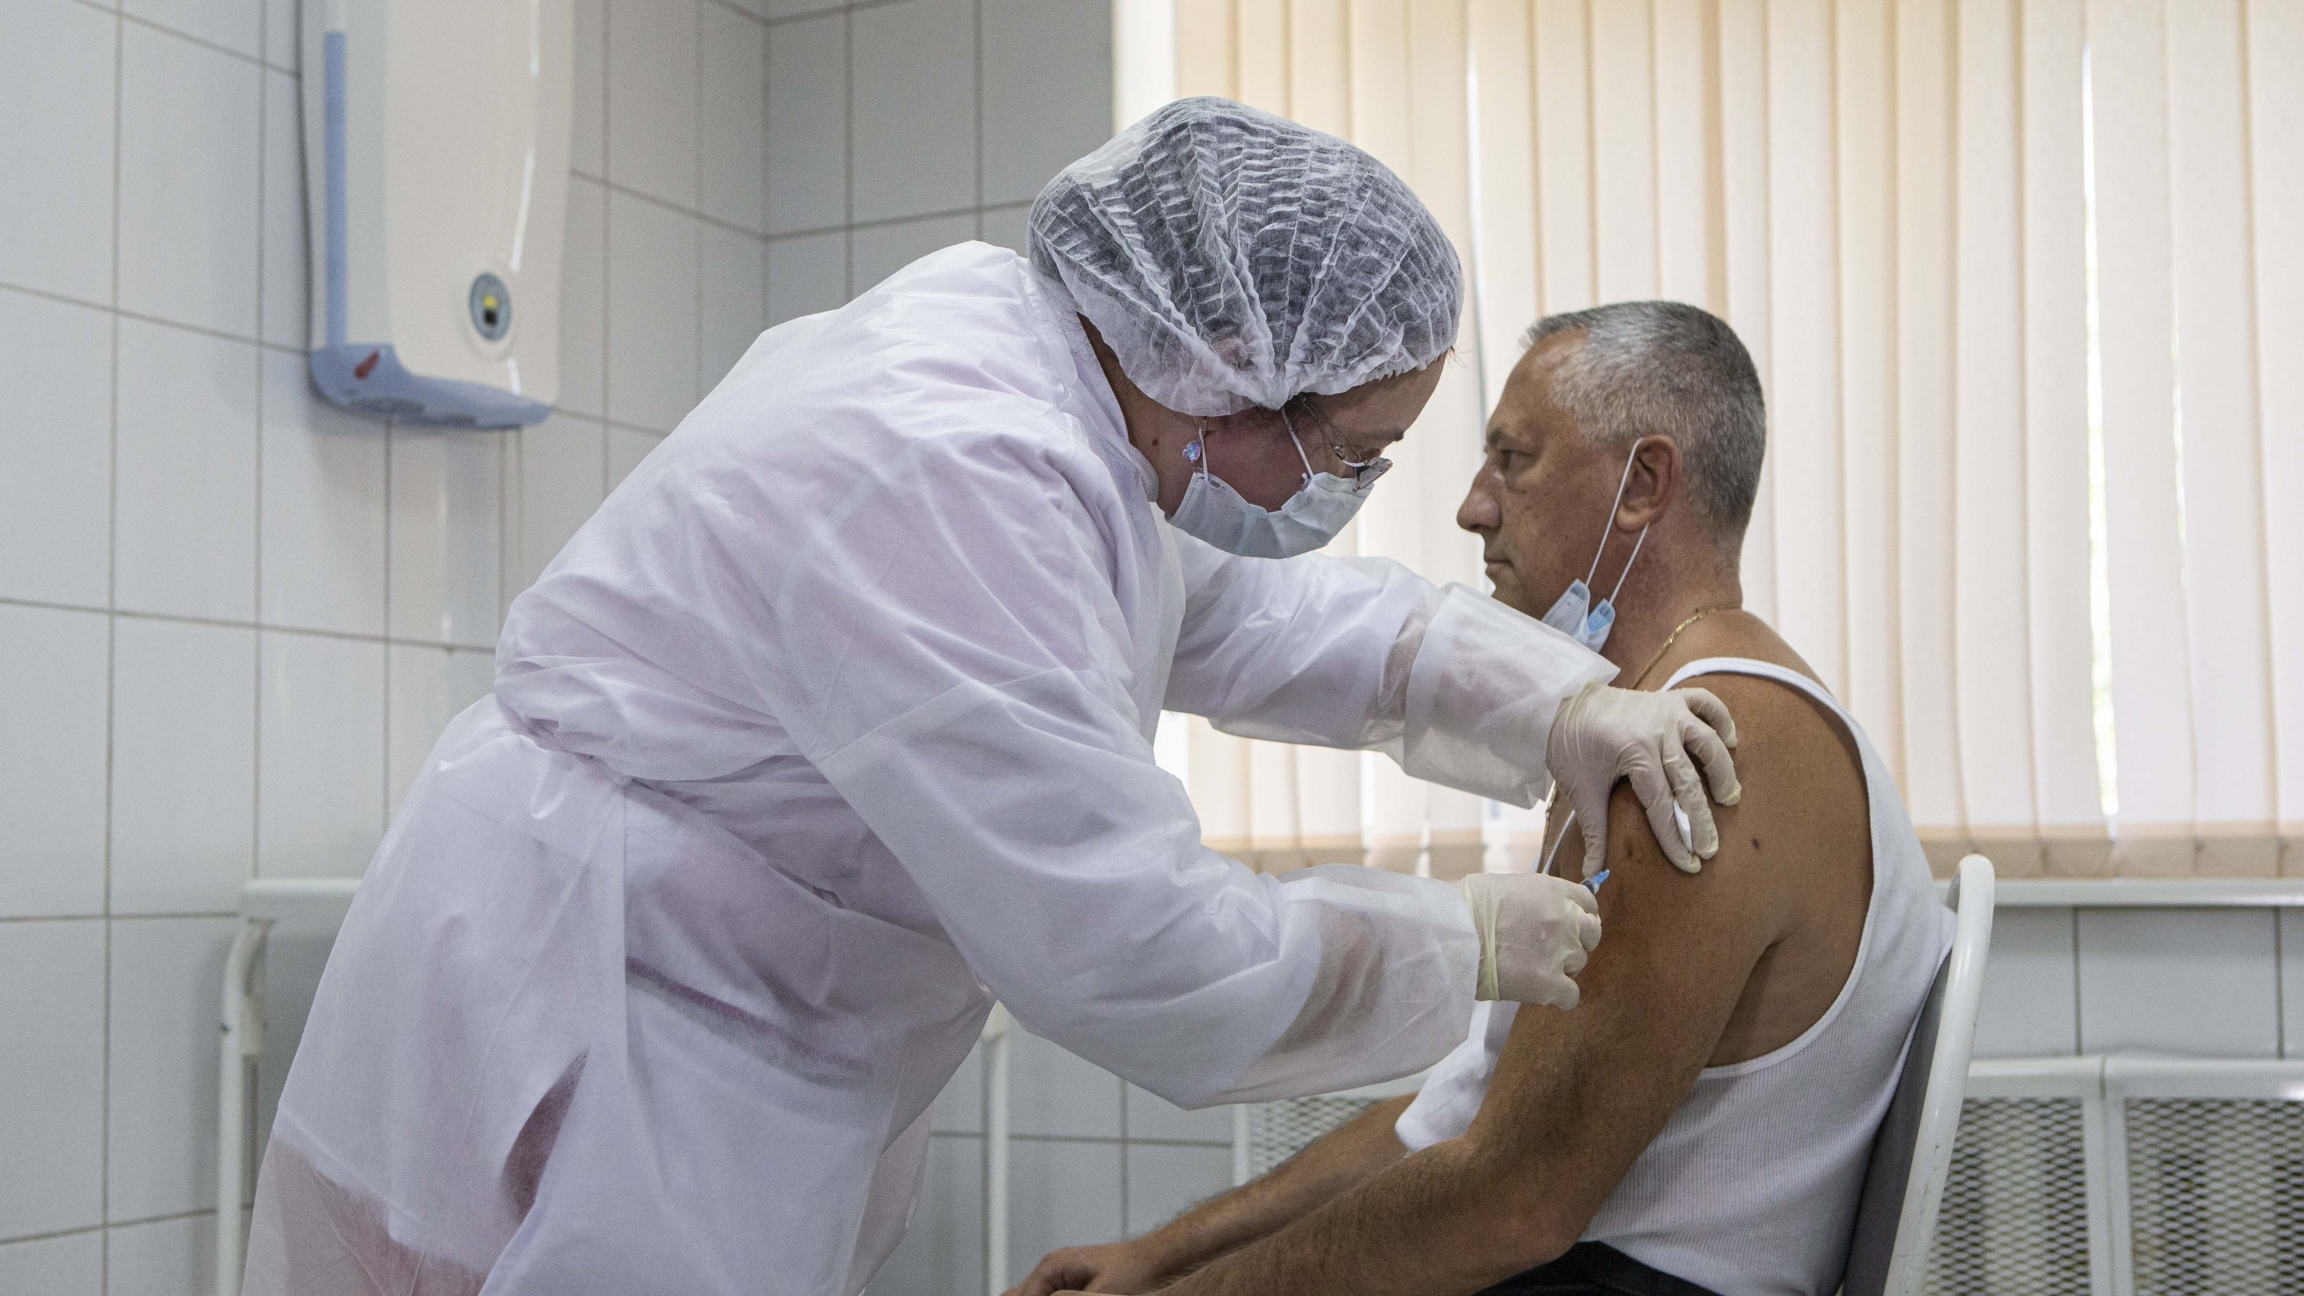 In this Sept. 15, 2020, file photo, a Russian medical worker administers a shot of Russia's experimental Sputnik V coronavirus vaccine in Moscow, Russia.